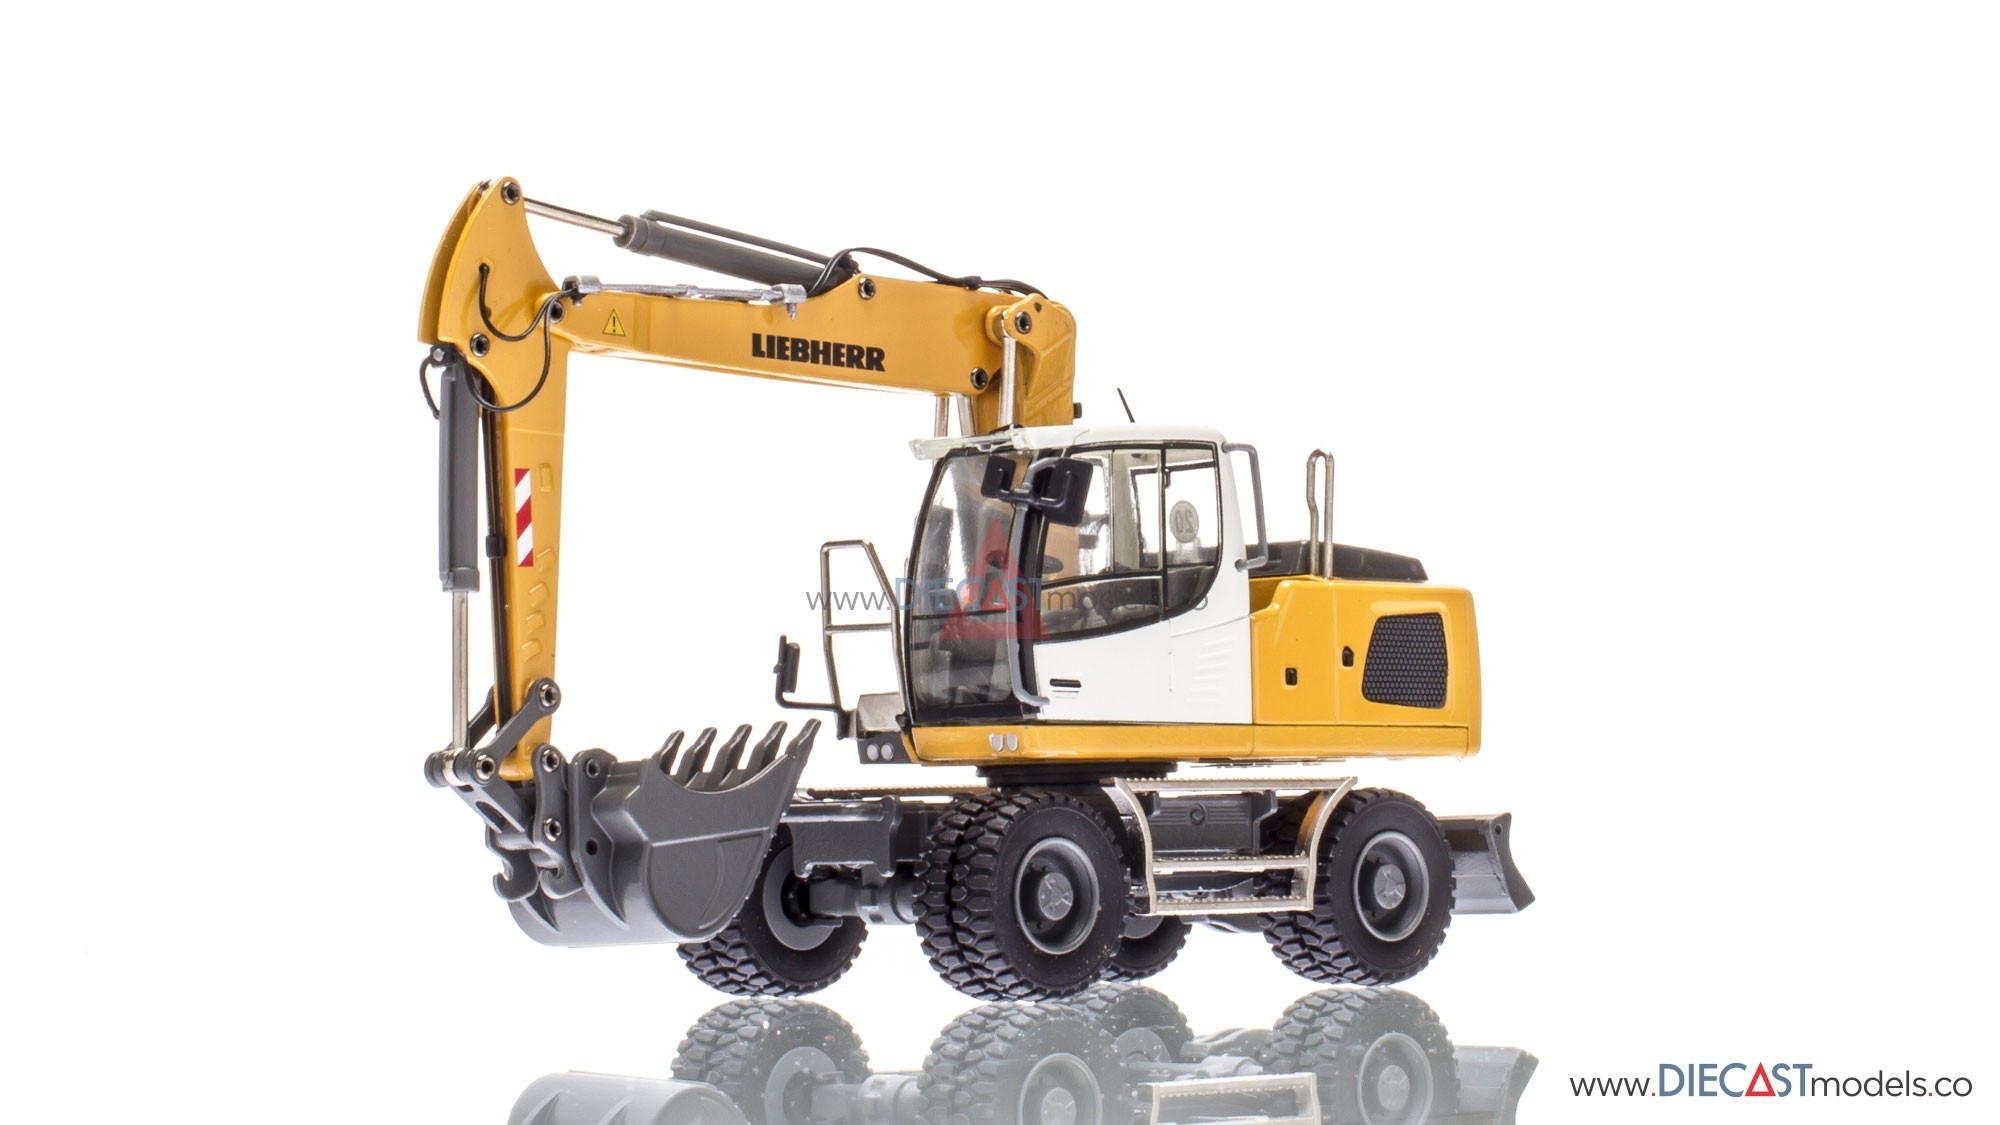 liebherr a920 hydraulic excavator with backhoe model shop. Black Bedroom Furniture Sets. Home Design Ideas